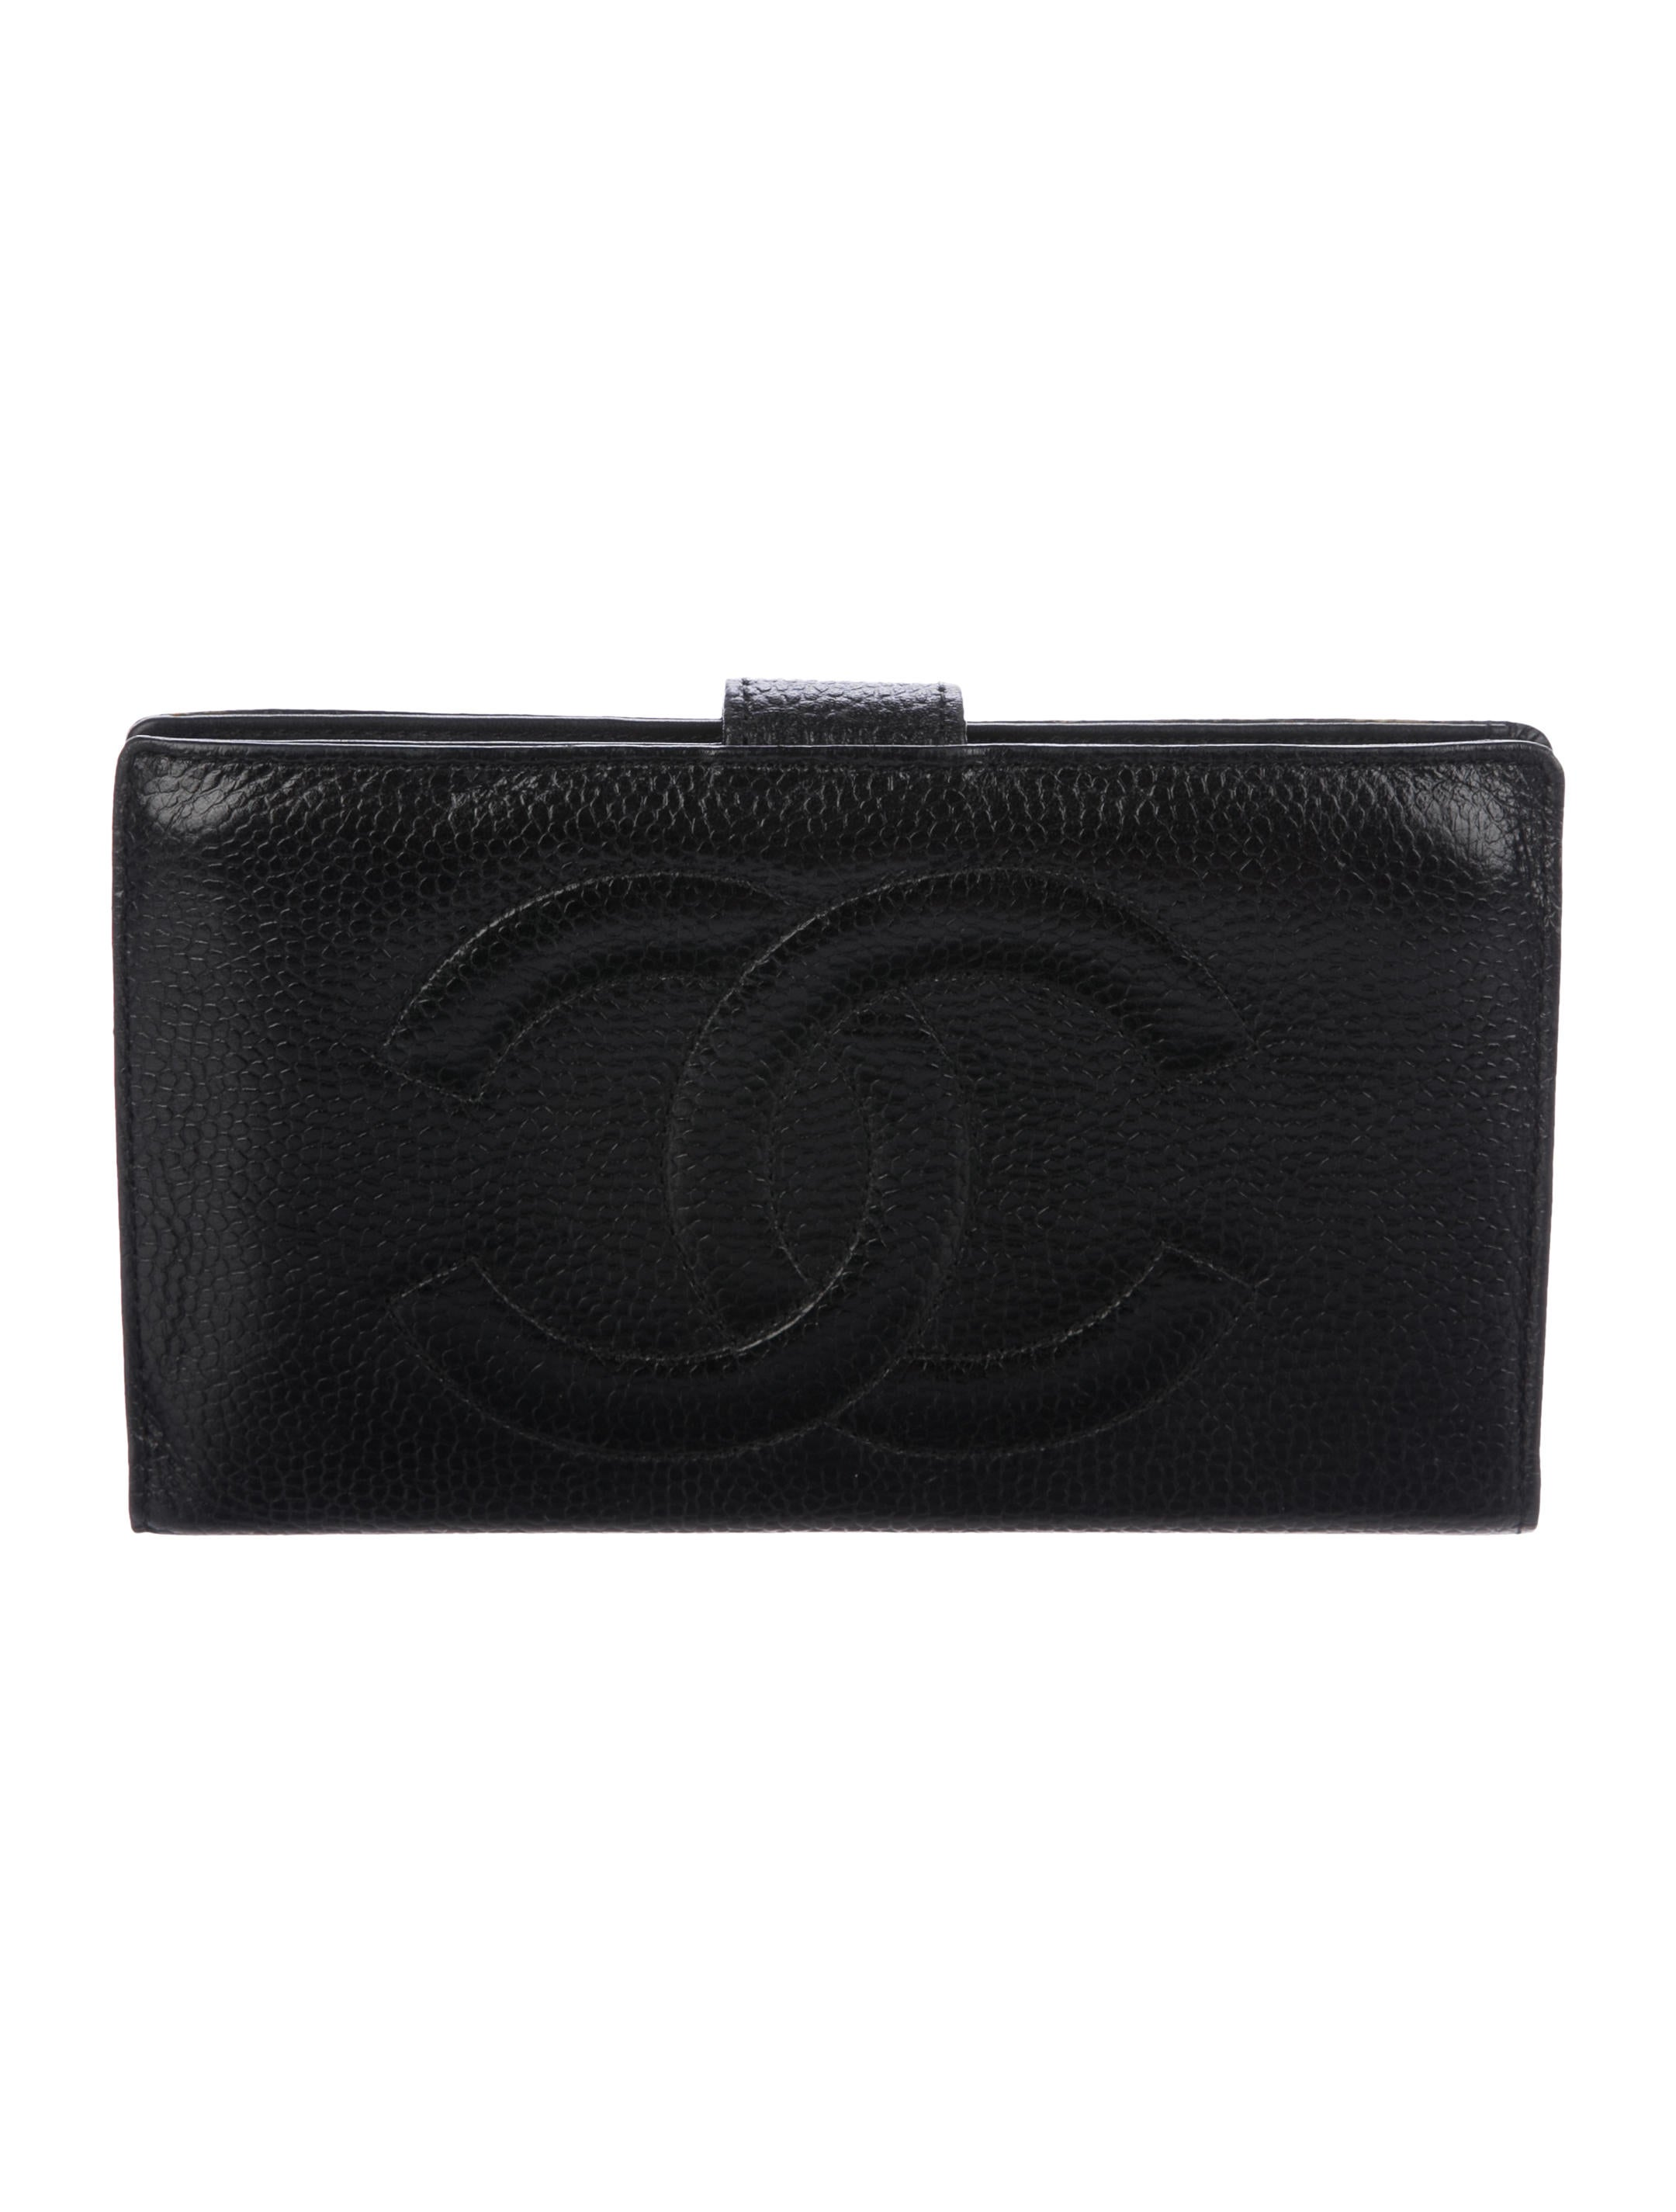 Chanel Vintage Timeless French Purse Wallet - Accessories ...